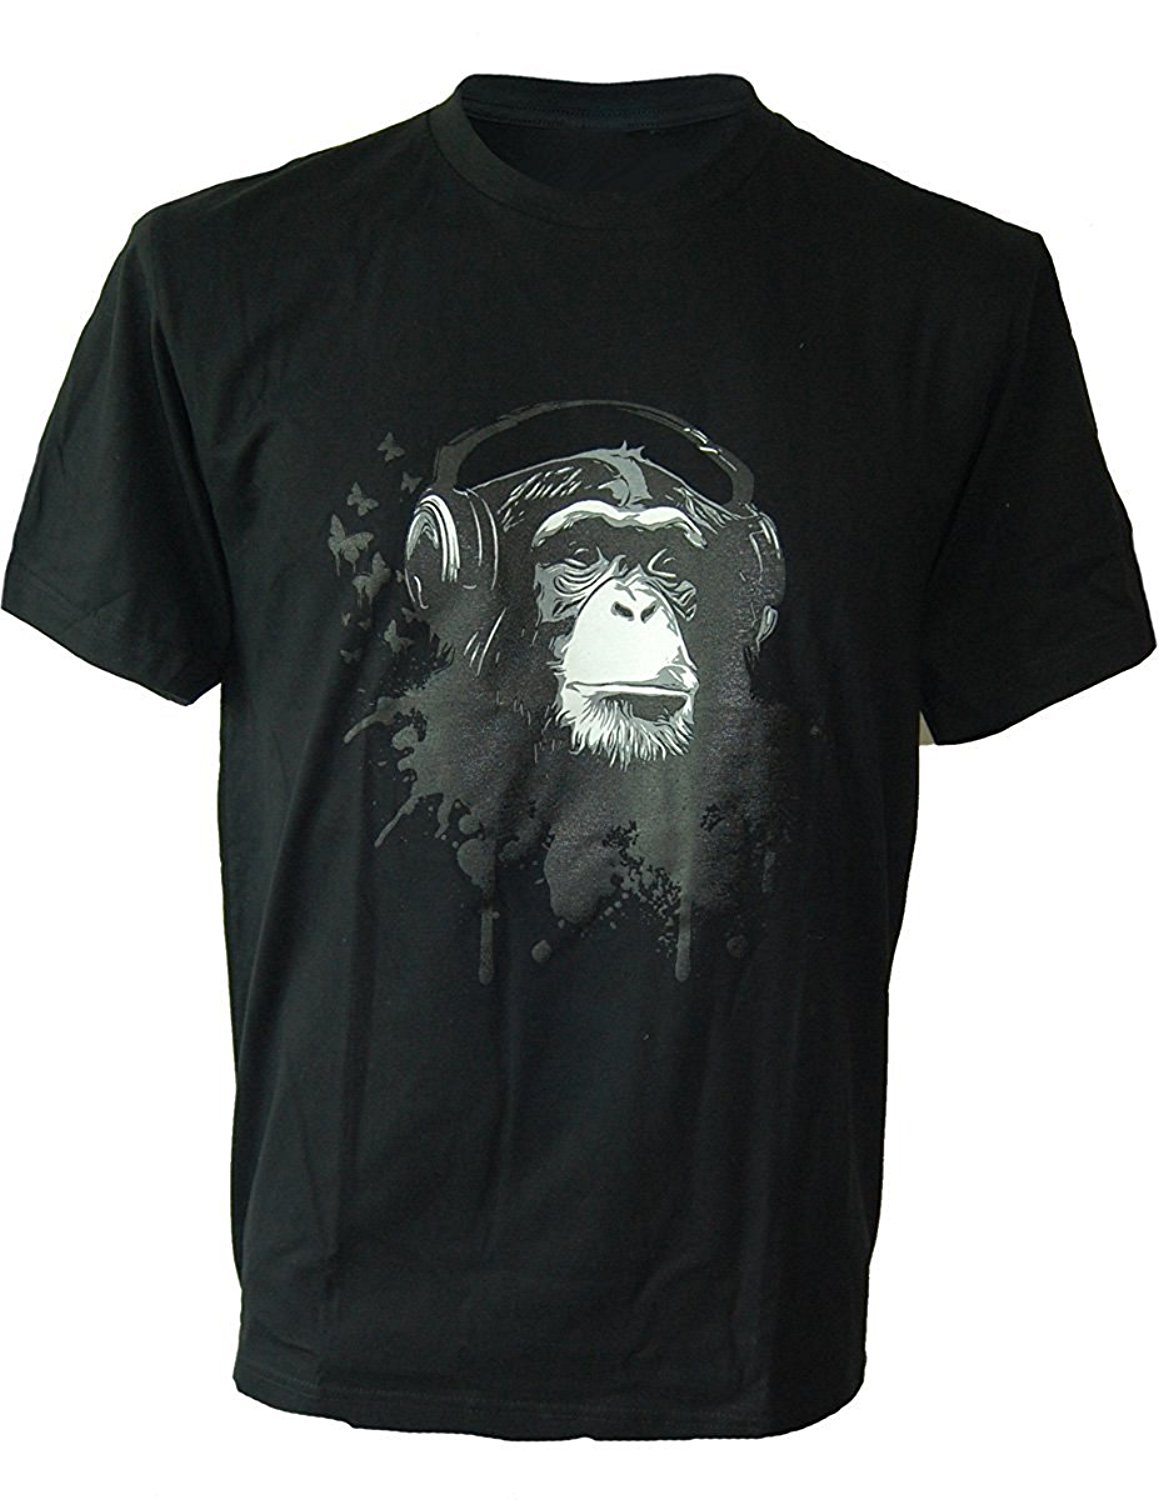 T Shirts Funny Short Sleeve O Neck Mens Cool Monkey Headphones Music Dj MenS T Shirt Party Club T Shirts